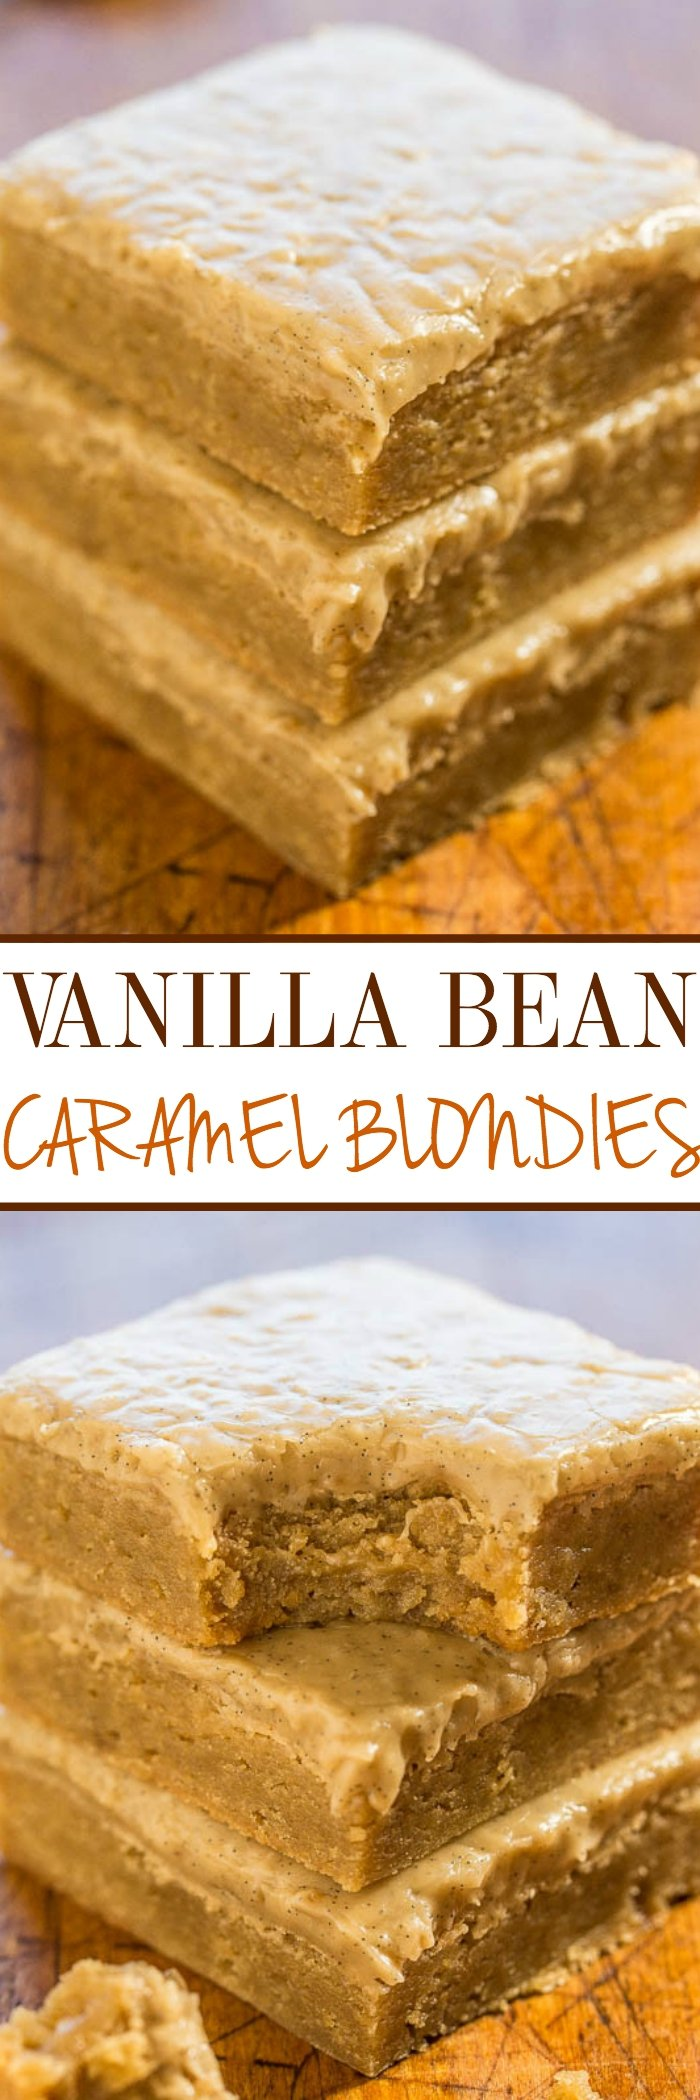 Vanilla Bean Caramel Blondies - Soft, chewy, buttery blondies topped with the most amazing vanilla bean caramel glaze!! So good that you'll want to put it on everything!! Easy, no mixer recipe!